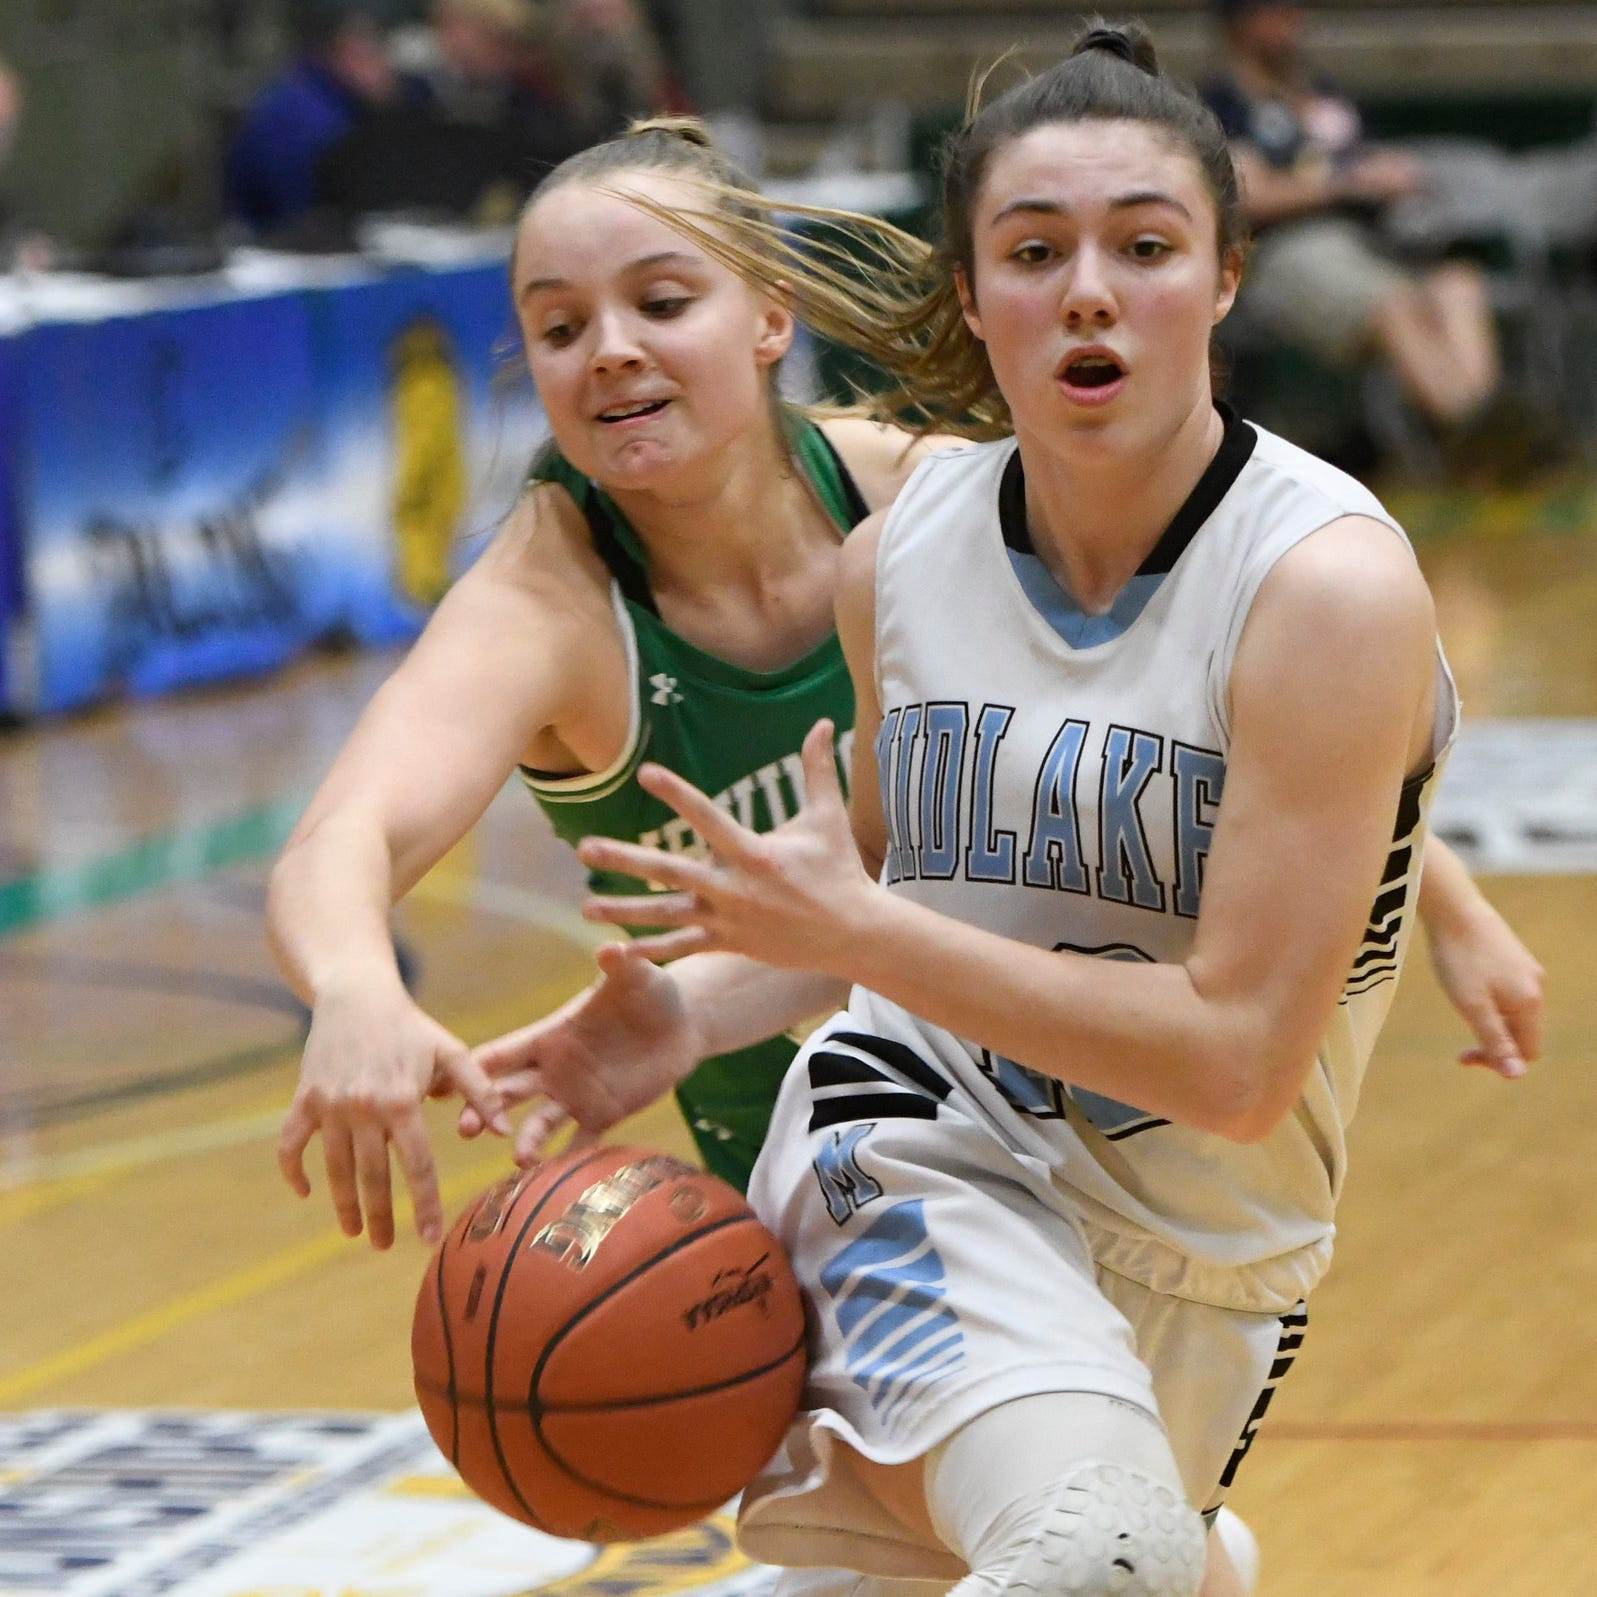 Midlakes runs into buzz saw, loses to hot-shooting Irvington in Class B state championship